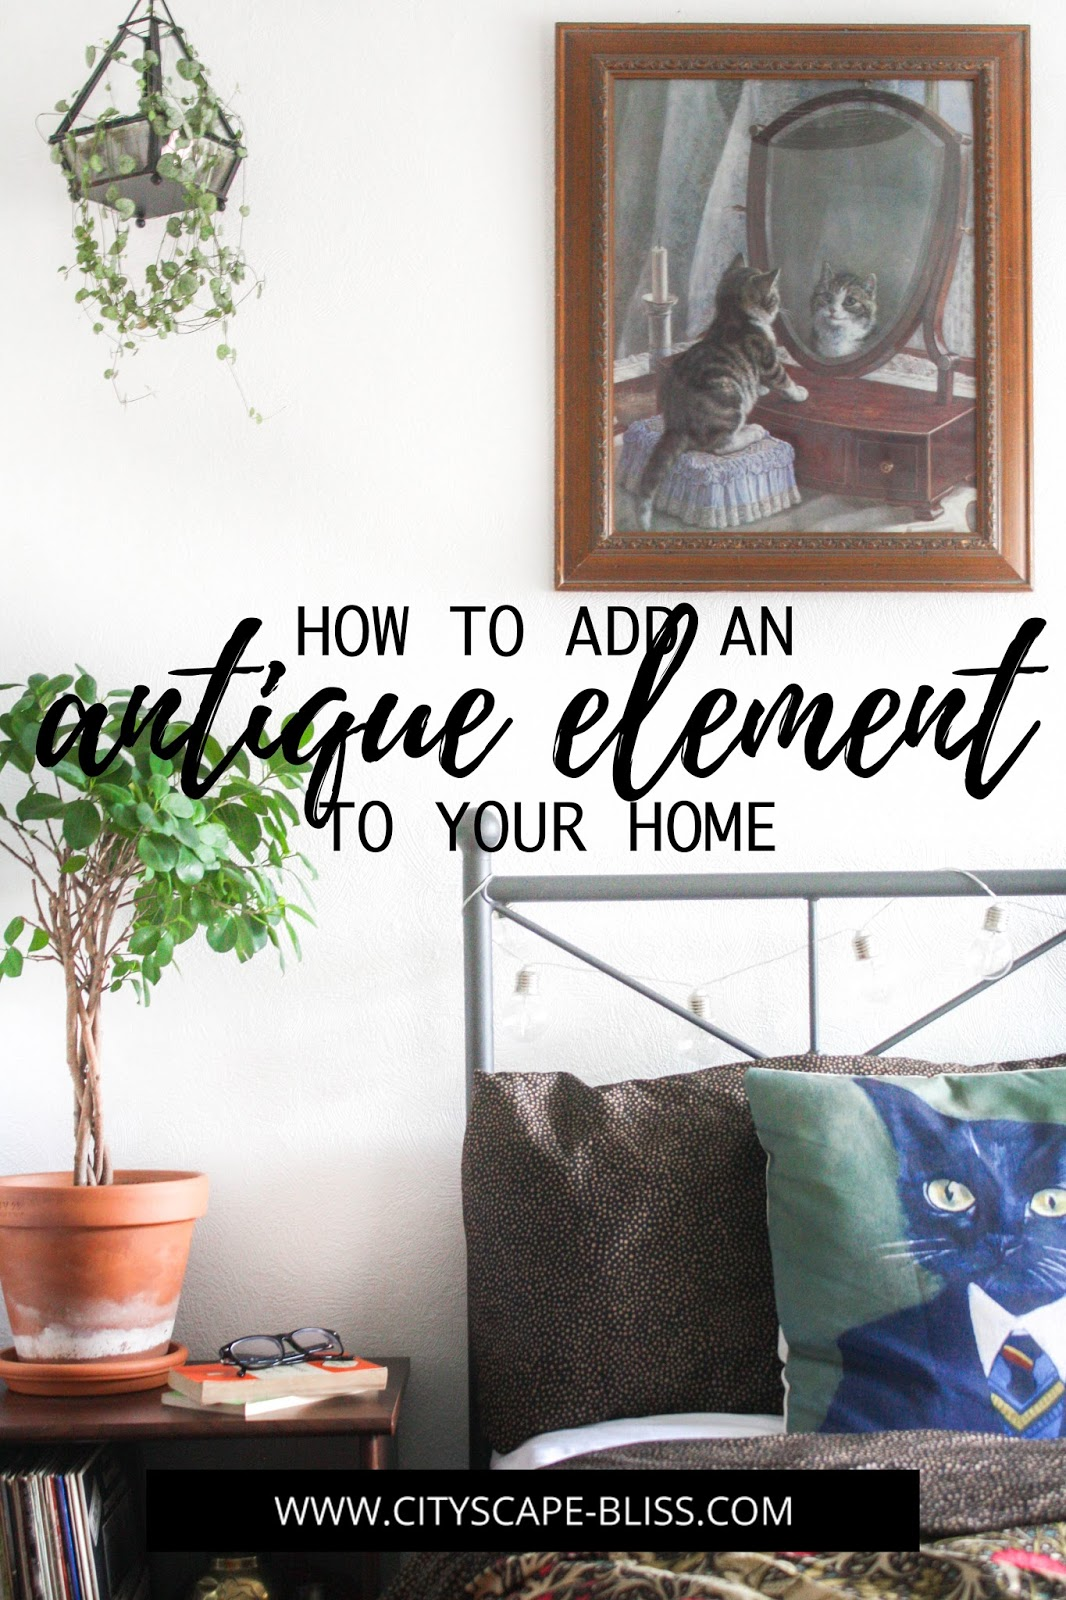 How to add an antique element to your home